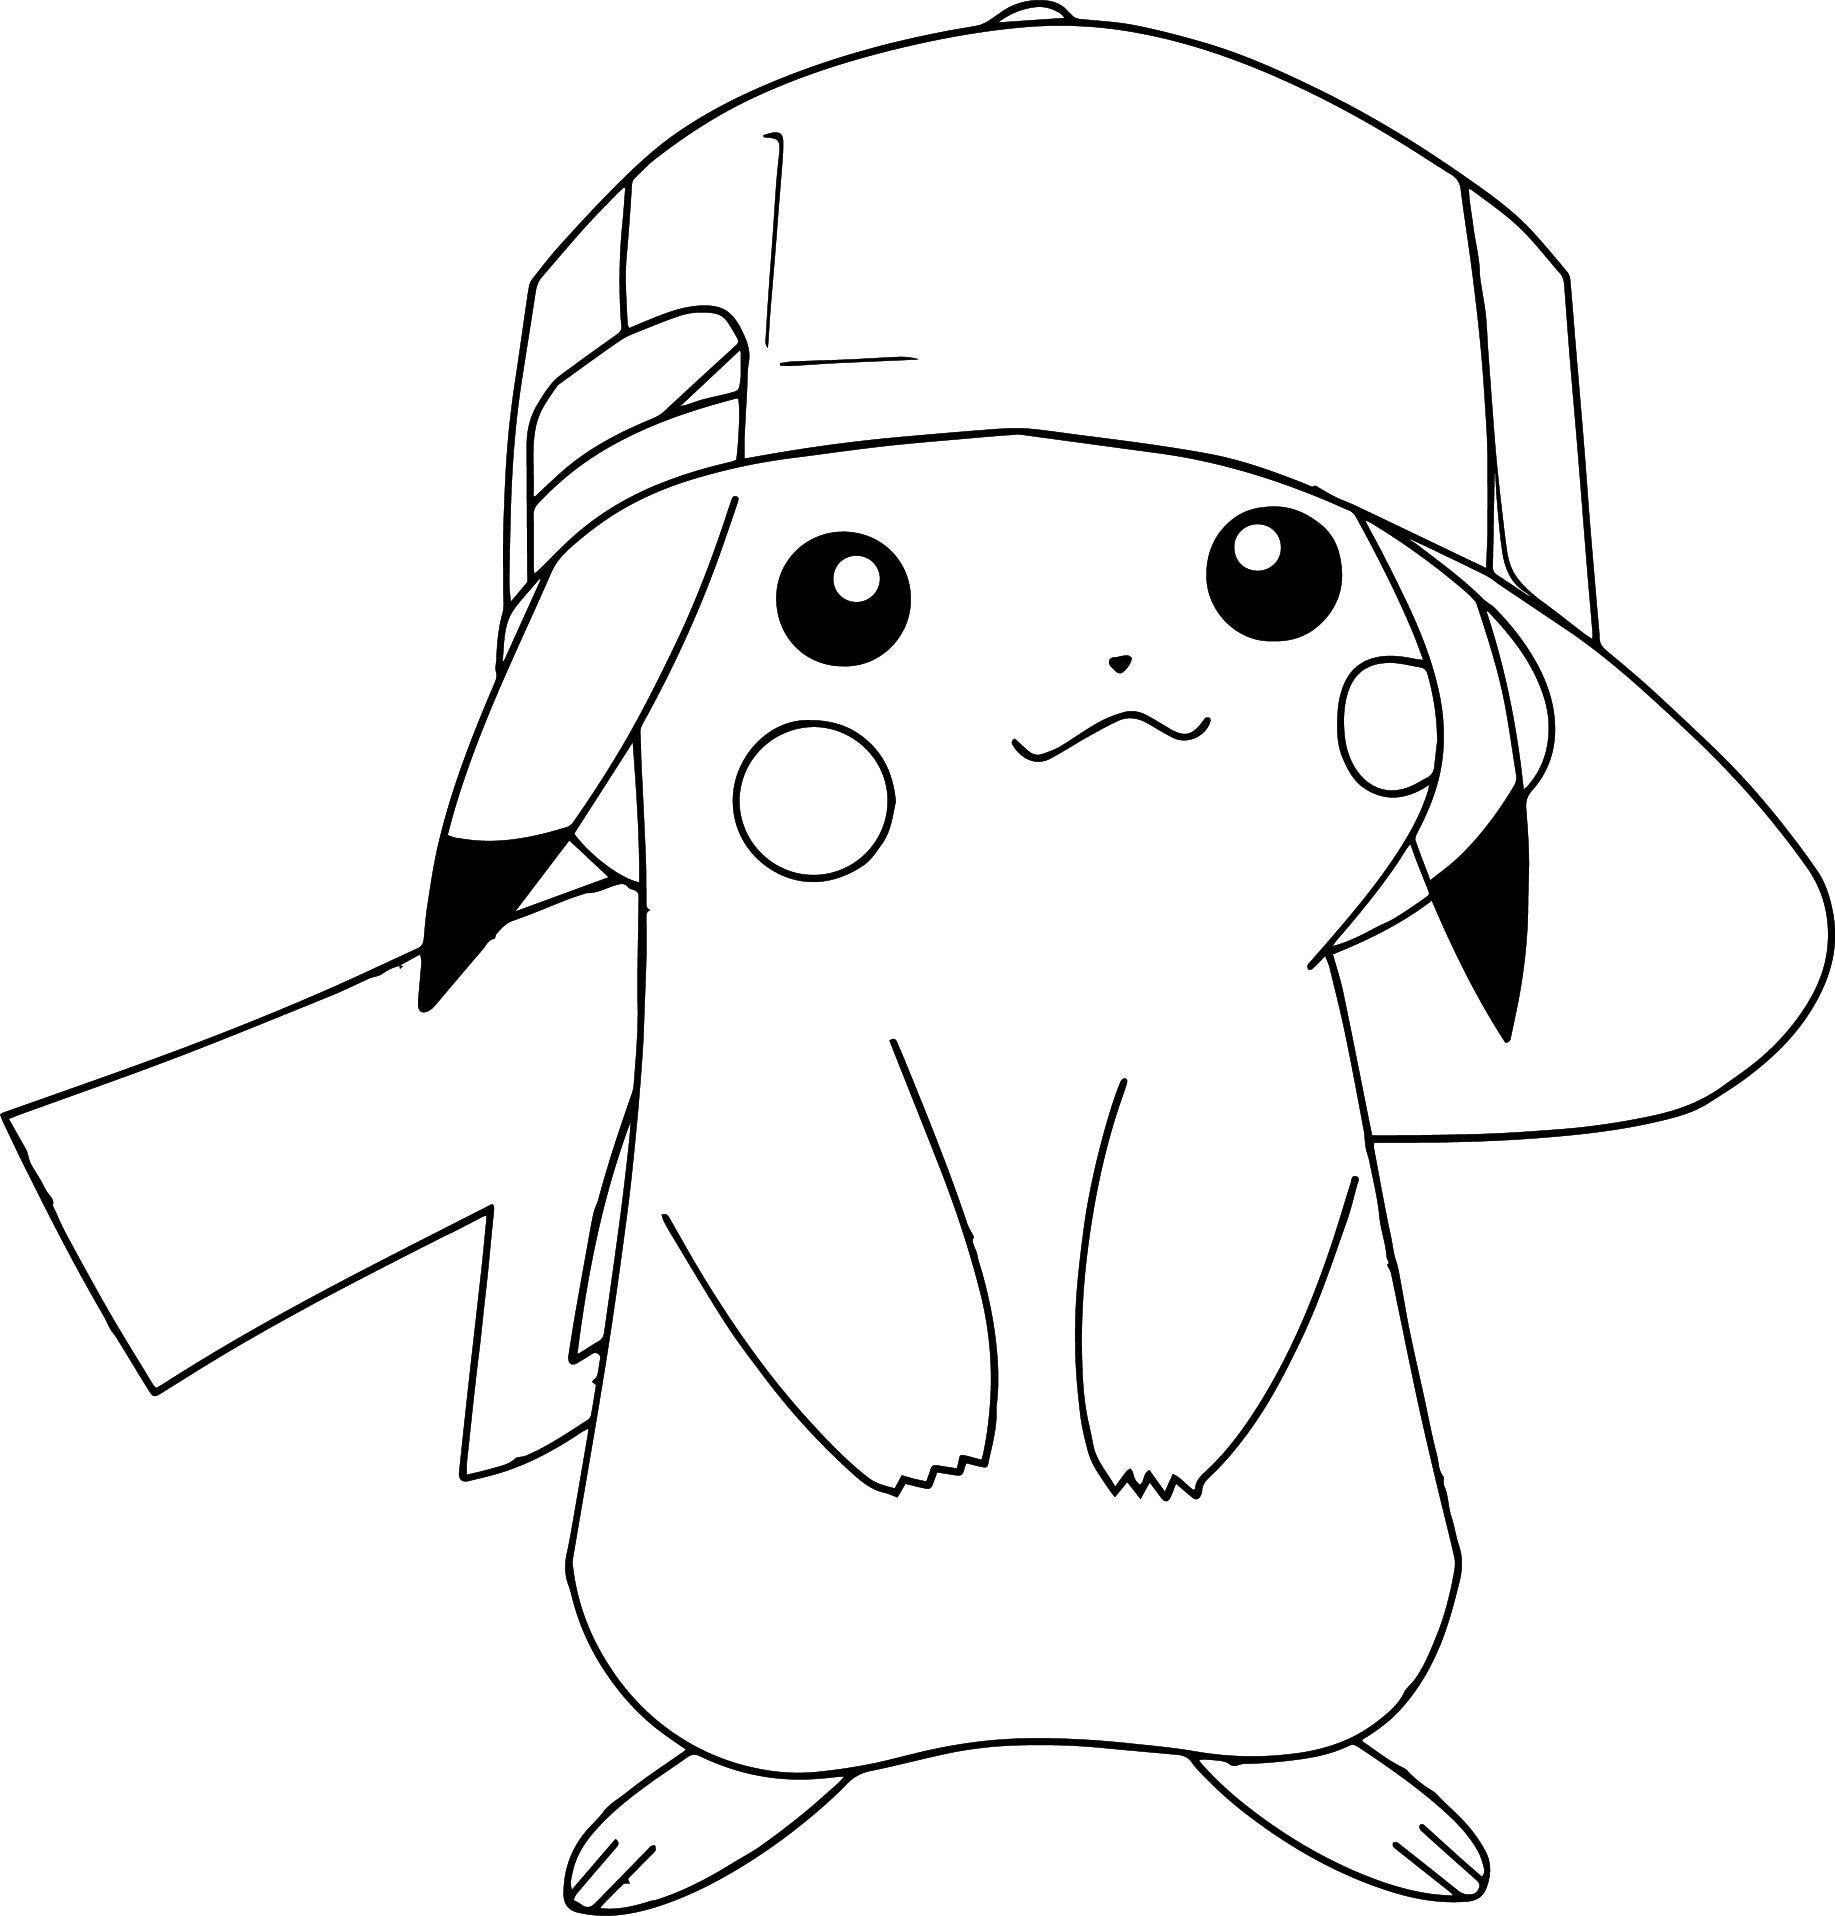 Charmander Coloring Page Awesome Pikachu Coloring Pages Printable Free Coloring Book